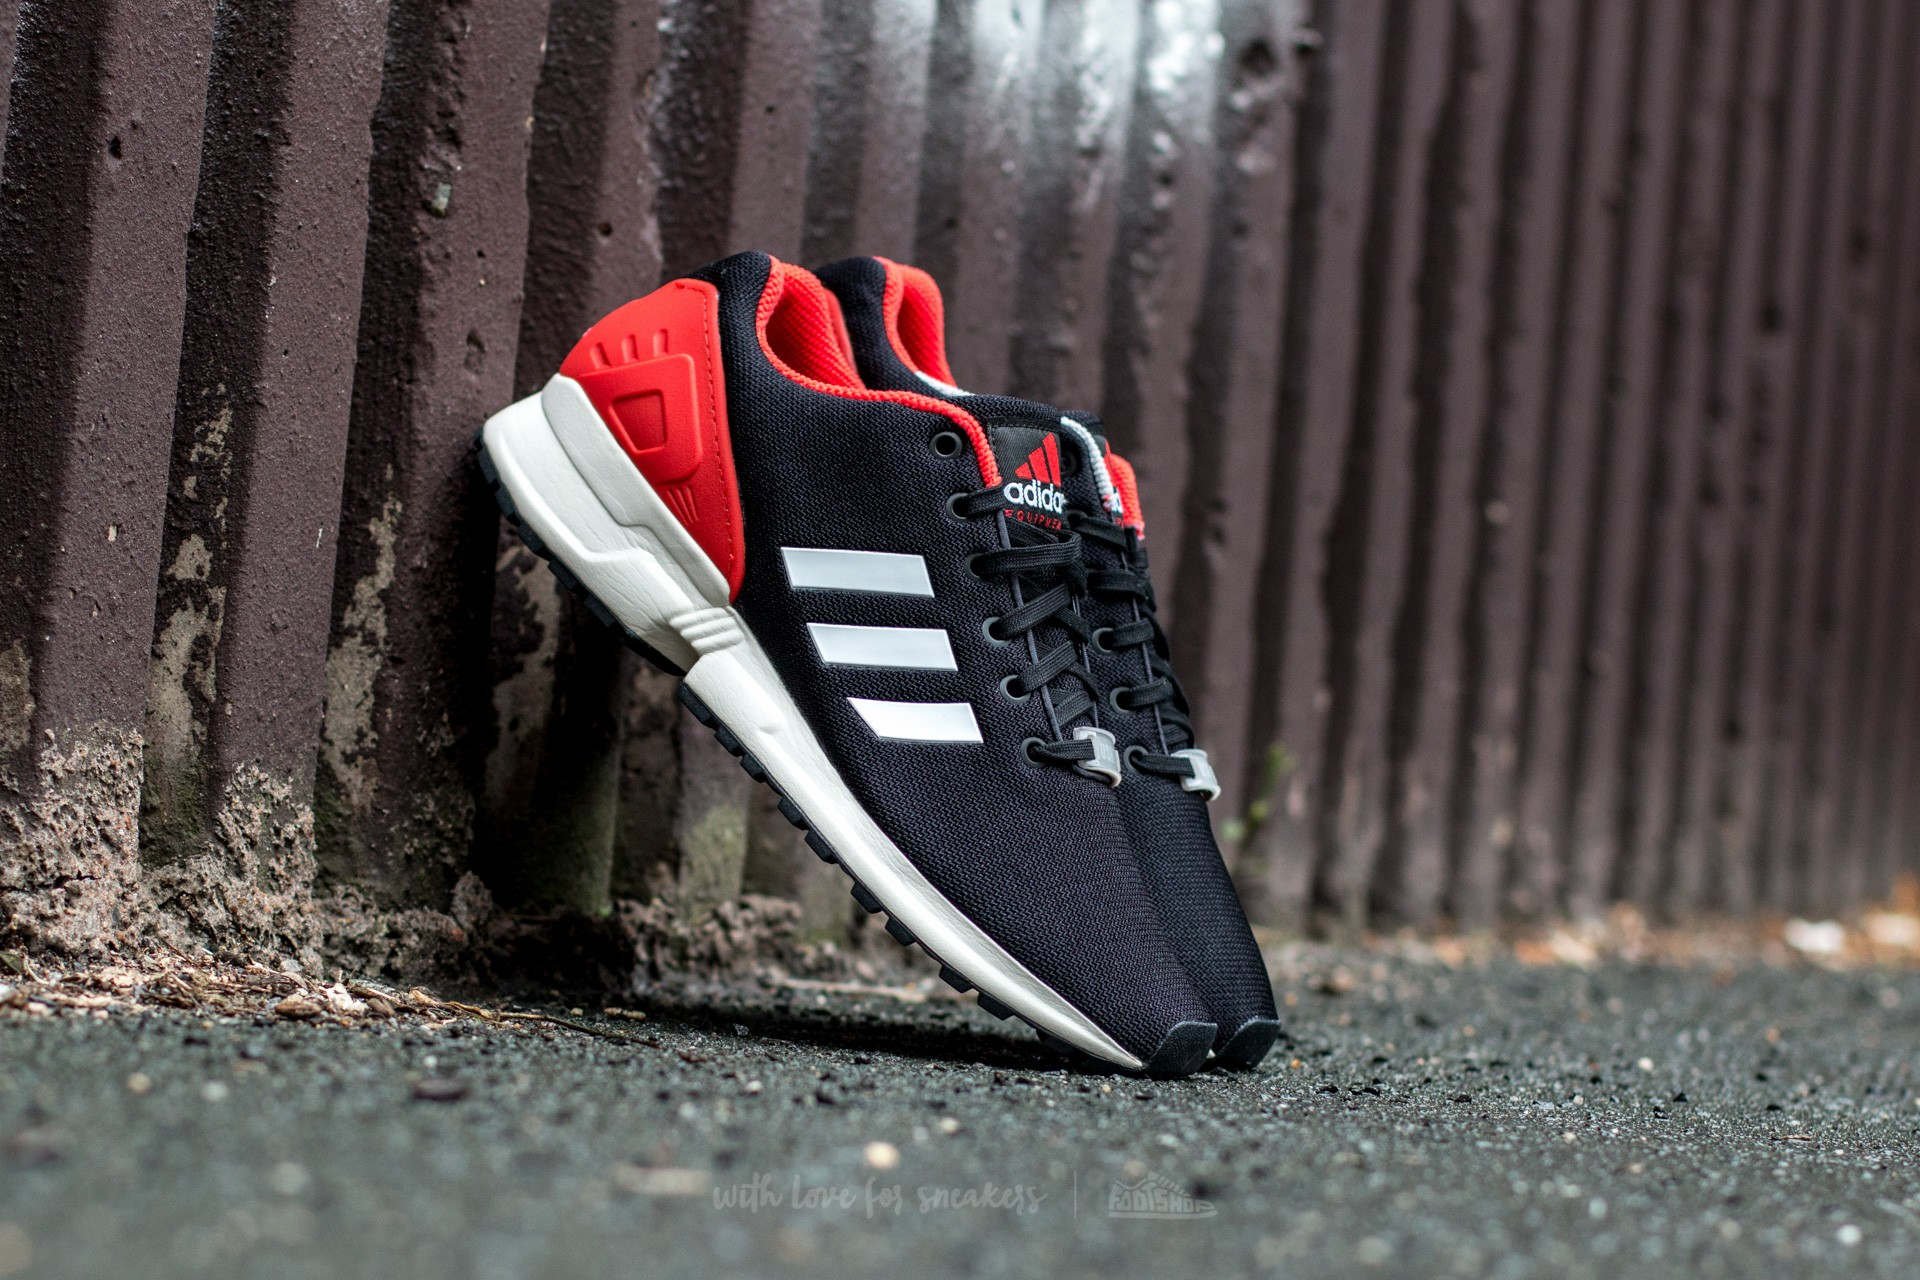 factory authentic 1dee7 b138a adidas flux red and black